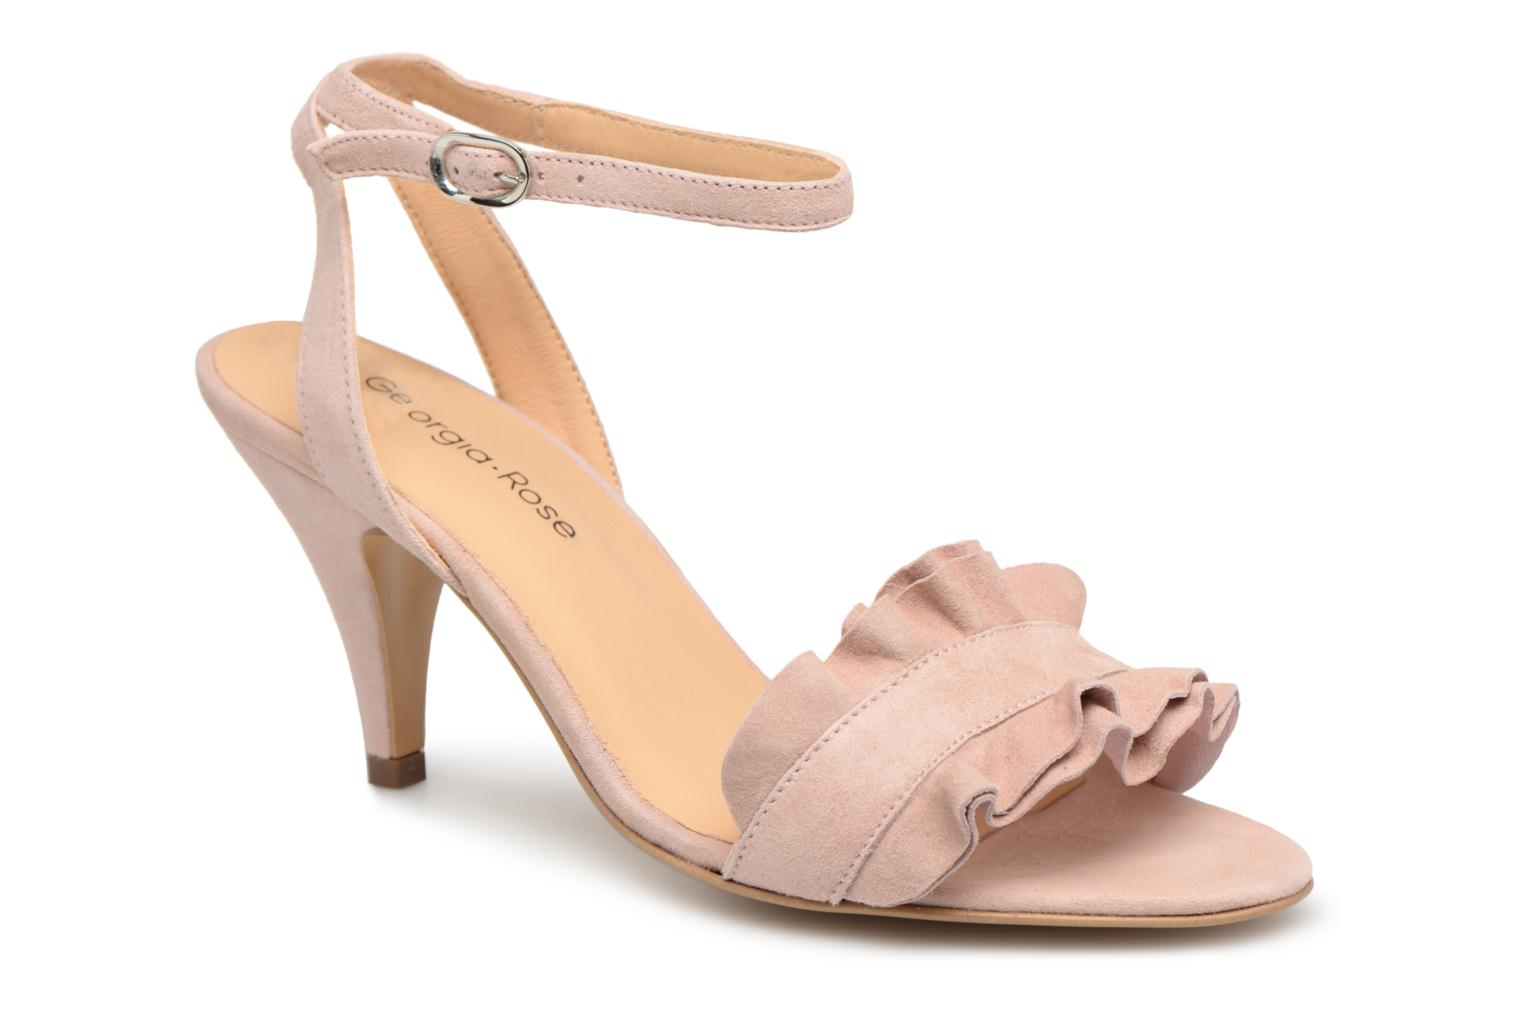 Marques Chaussure femme Georgia Rose femme Lyvolan Nude